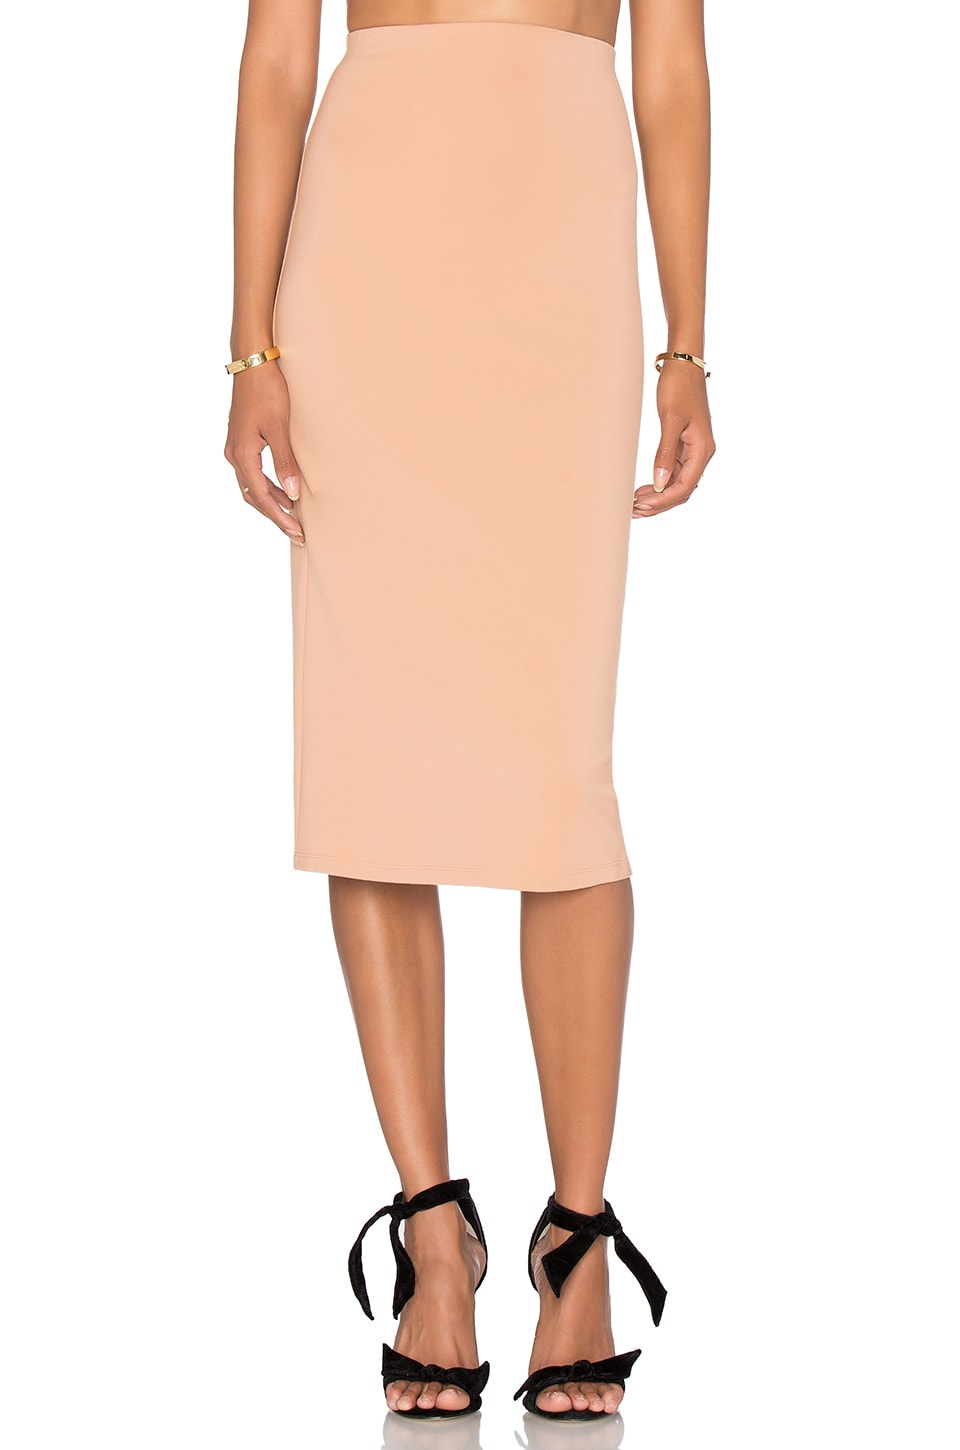 LPA Skirt 29 in Nude